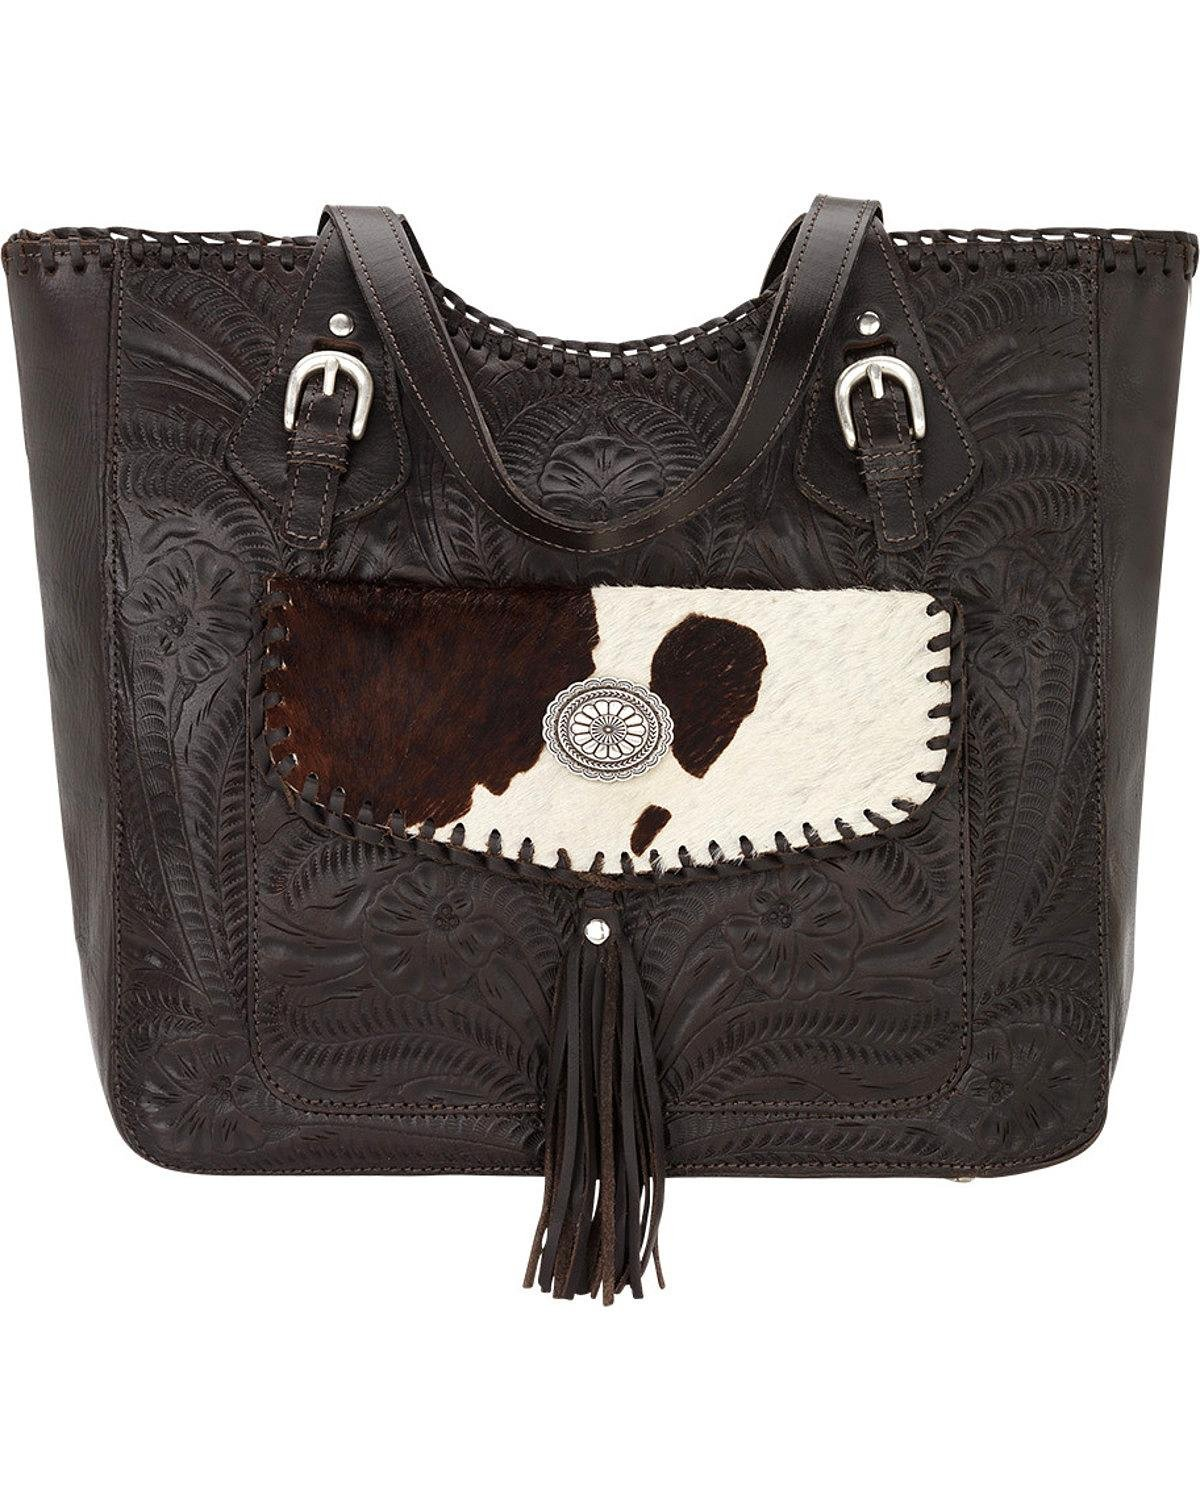 American West Women's Annie's Secret Collection Large Zip Top Tote, Chocolate, One Size